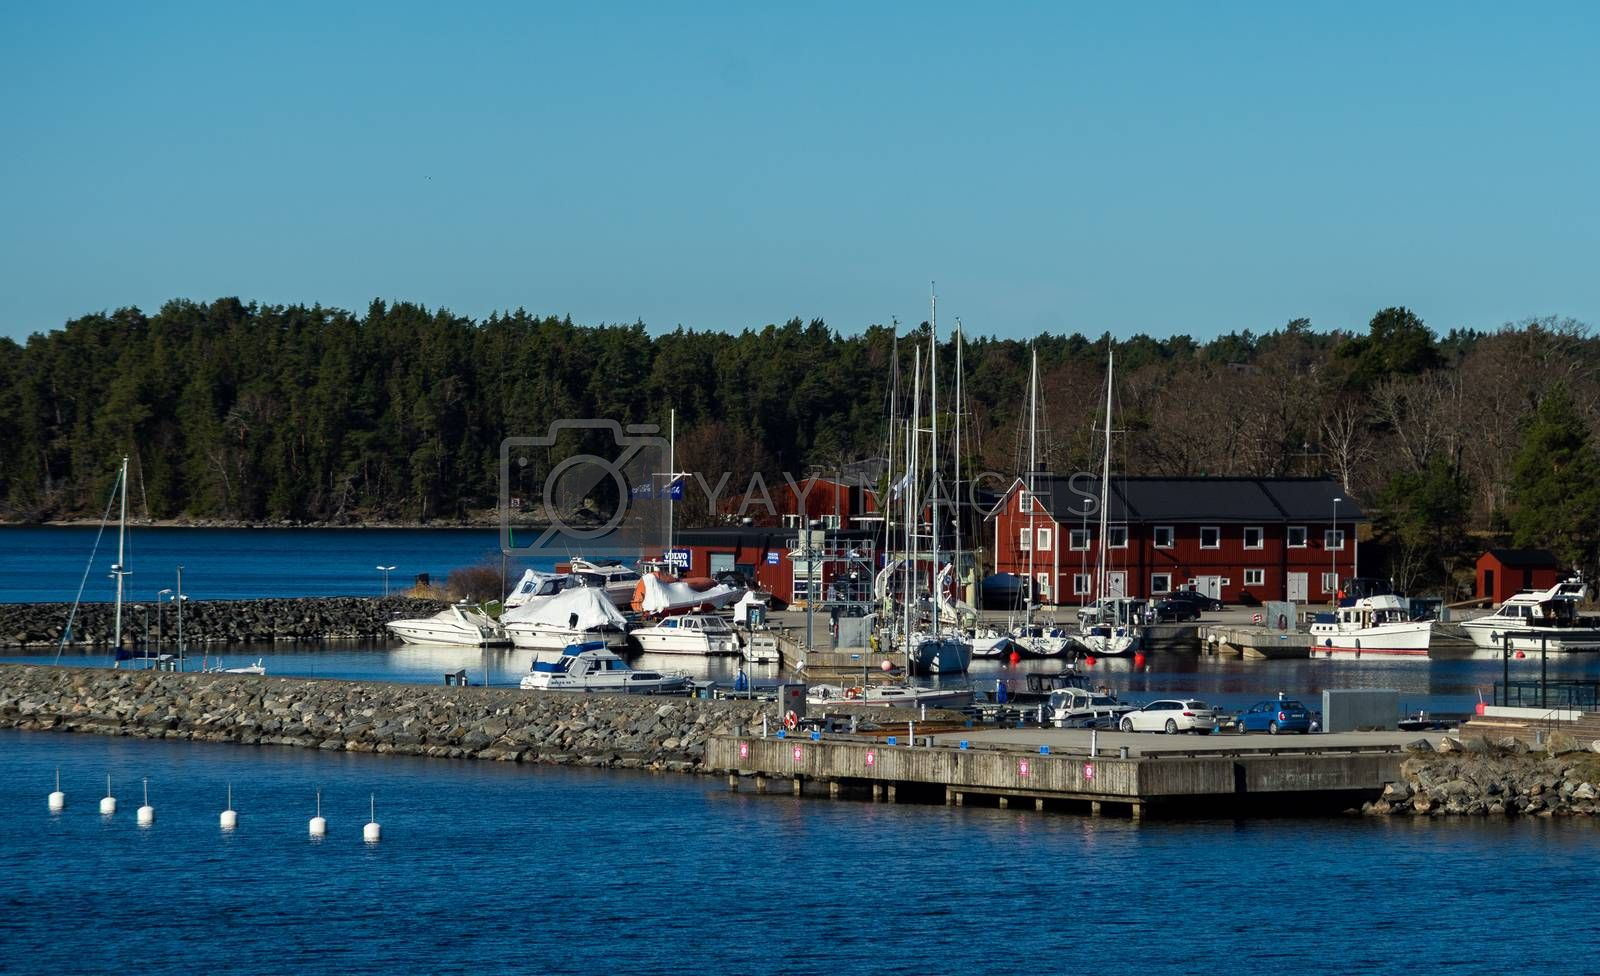 April 22, 2018, Stockholm Sweden. Marina for yachts on dwellings island of the Stockholm archipelago in the Baltic Sea in the early morning.